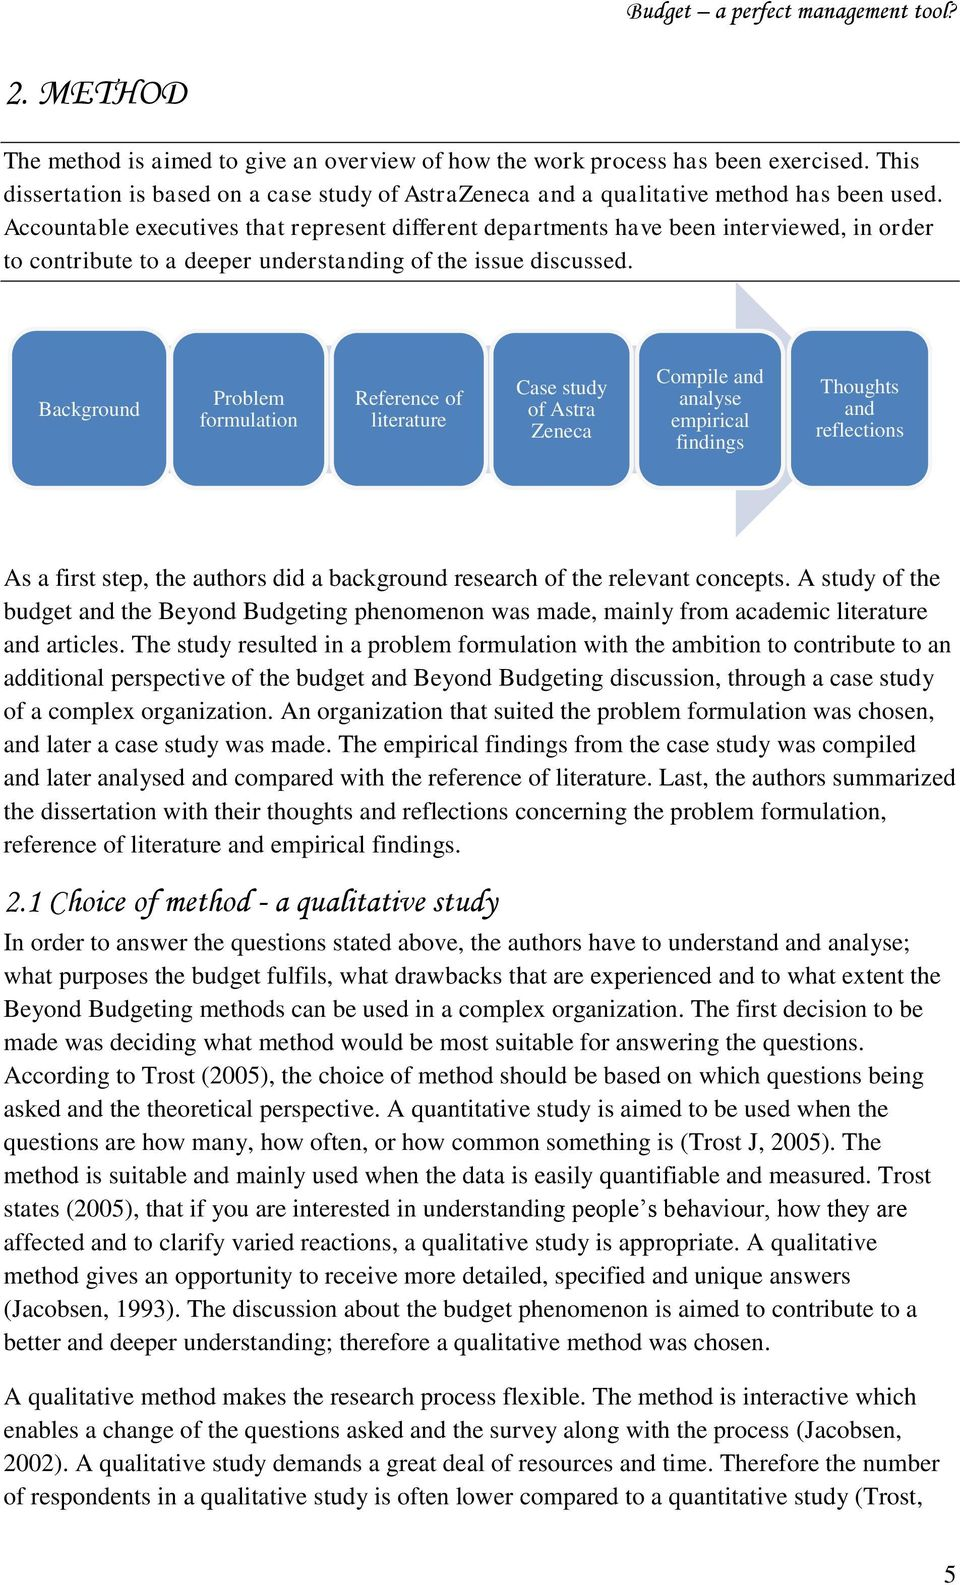 Background Problem formulation Reference of literature Case study of Astra Zeneca Compile and analyse empirical findings Thoughts and reflections As a first step, the authors did a background